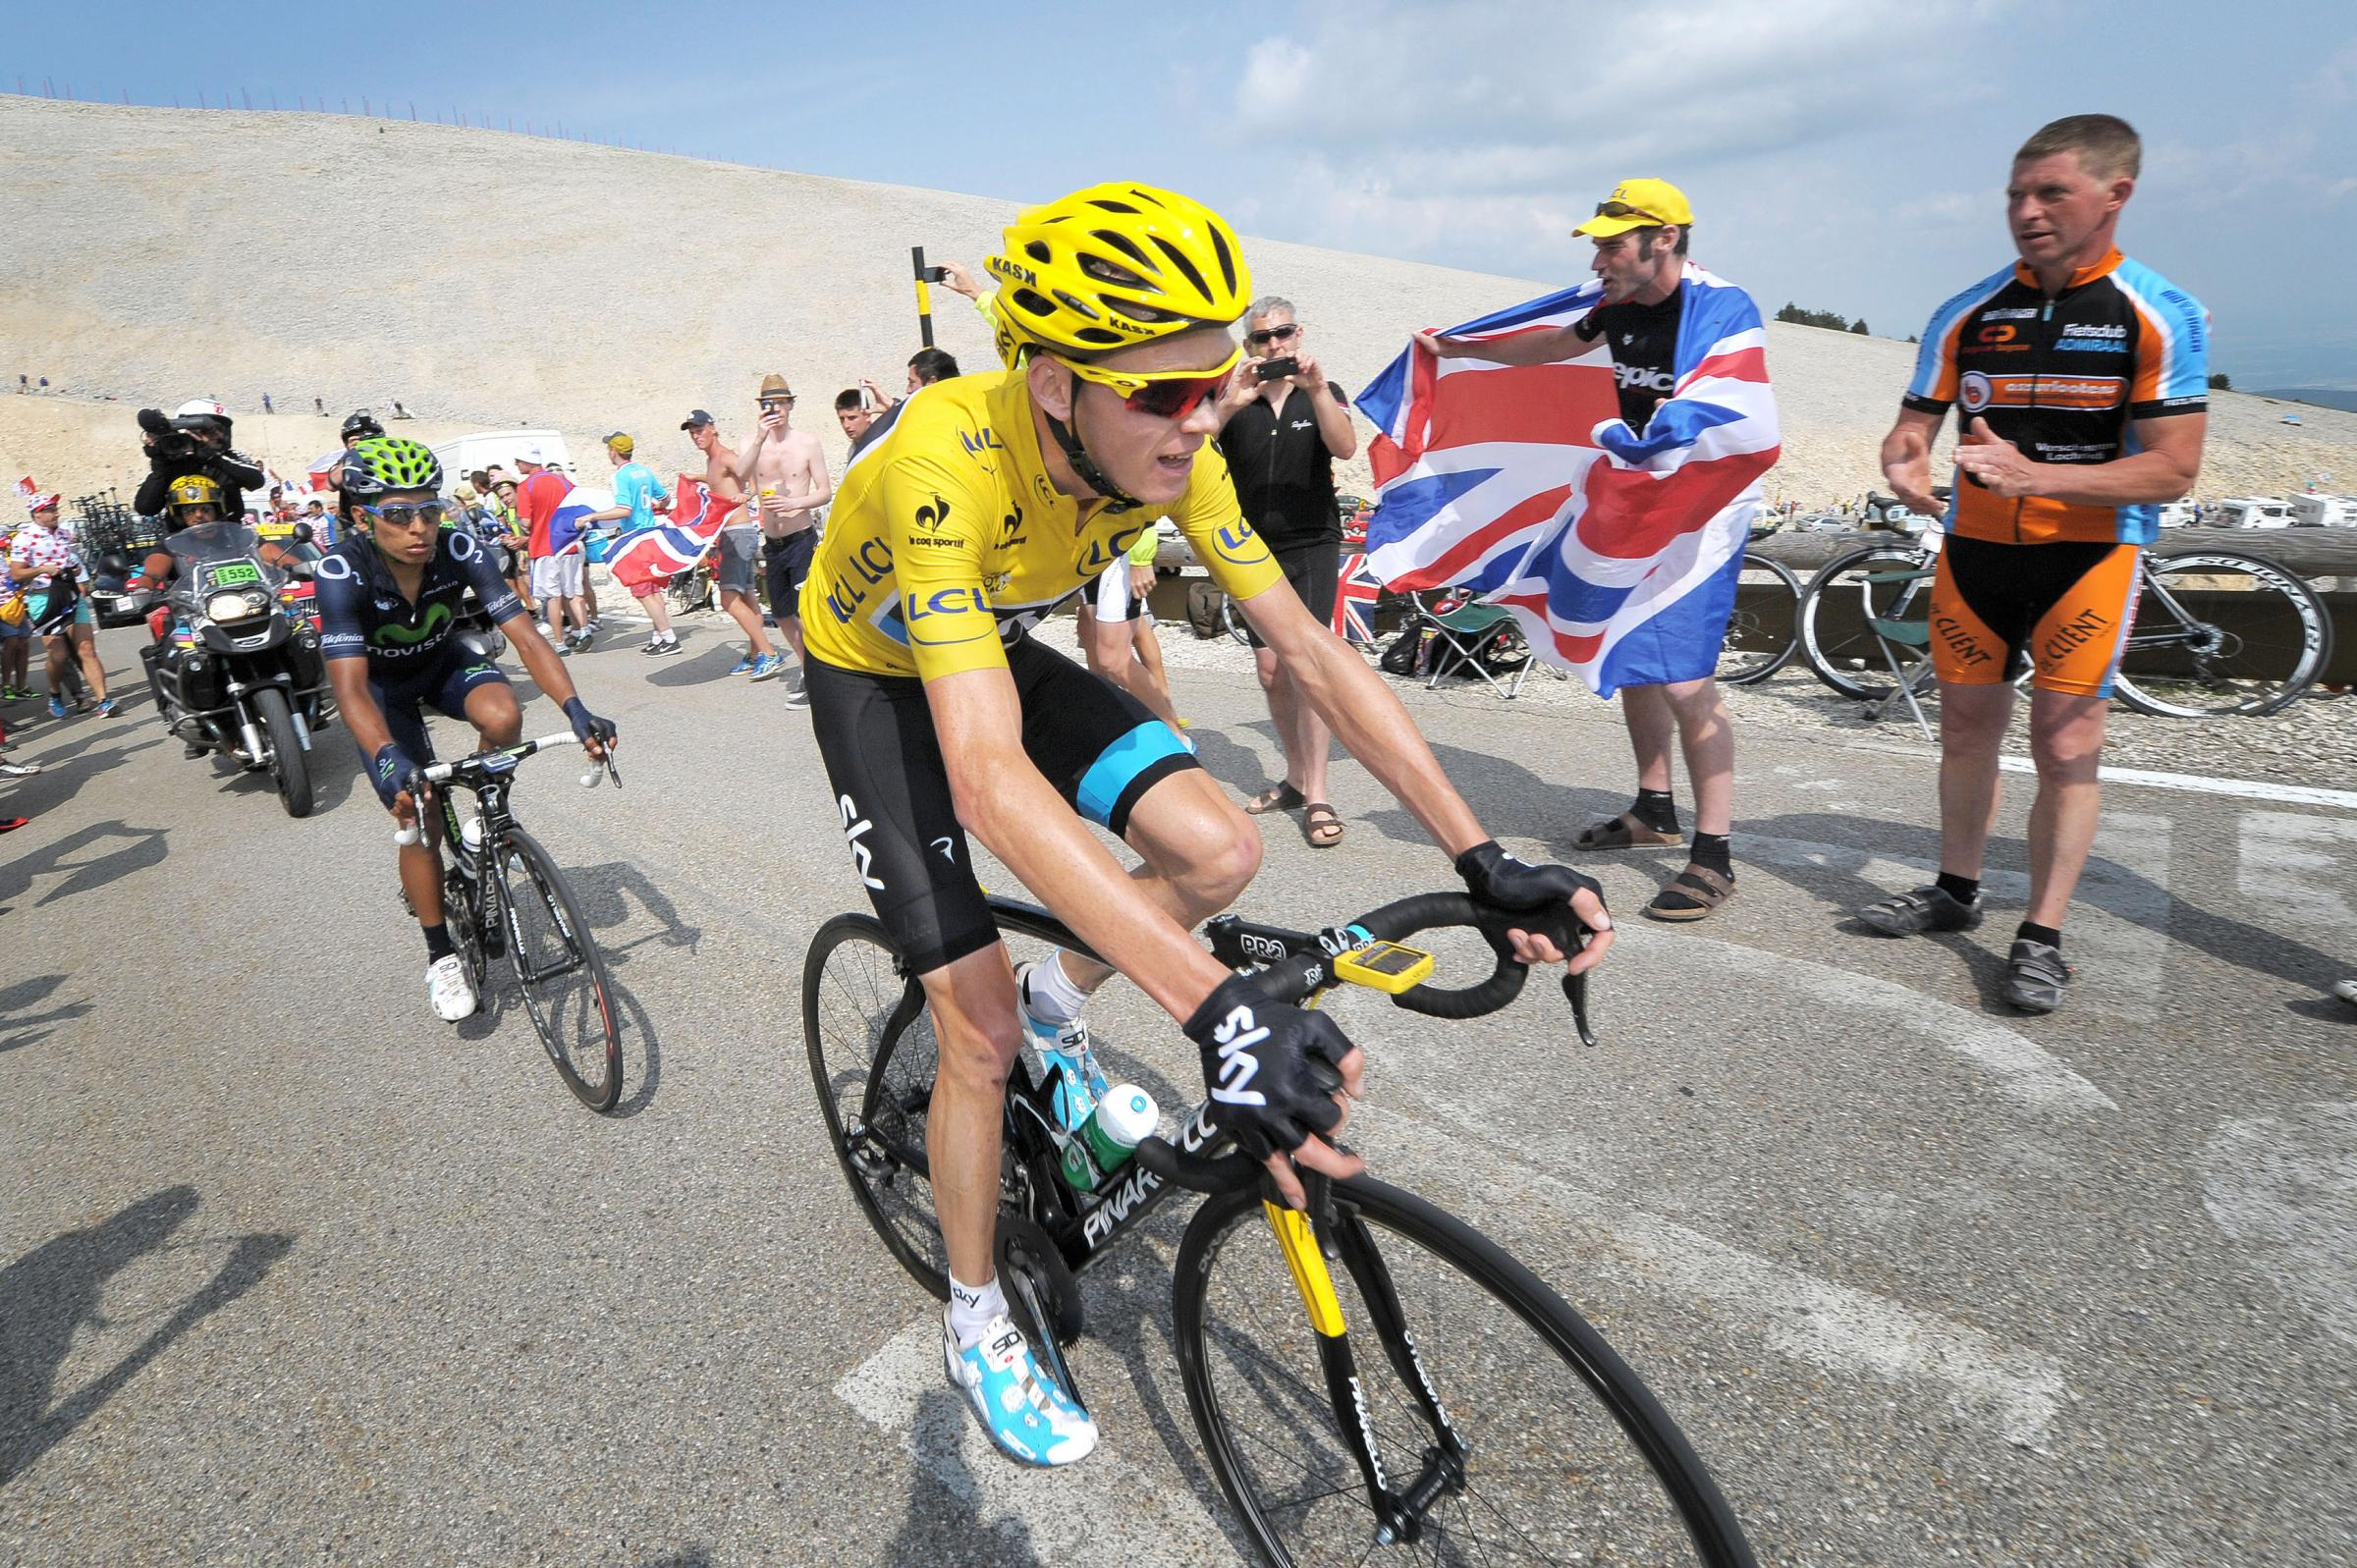 Chris Froome in last year's Tour de France